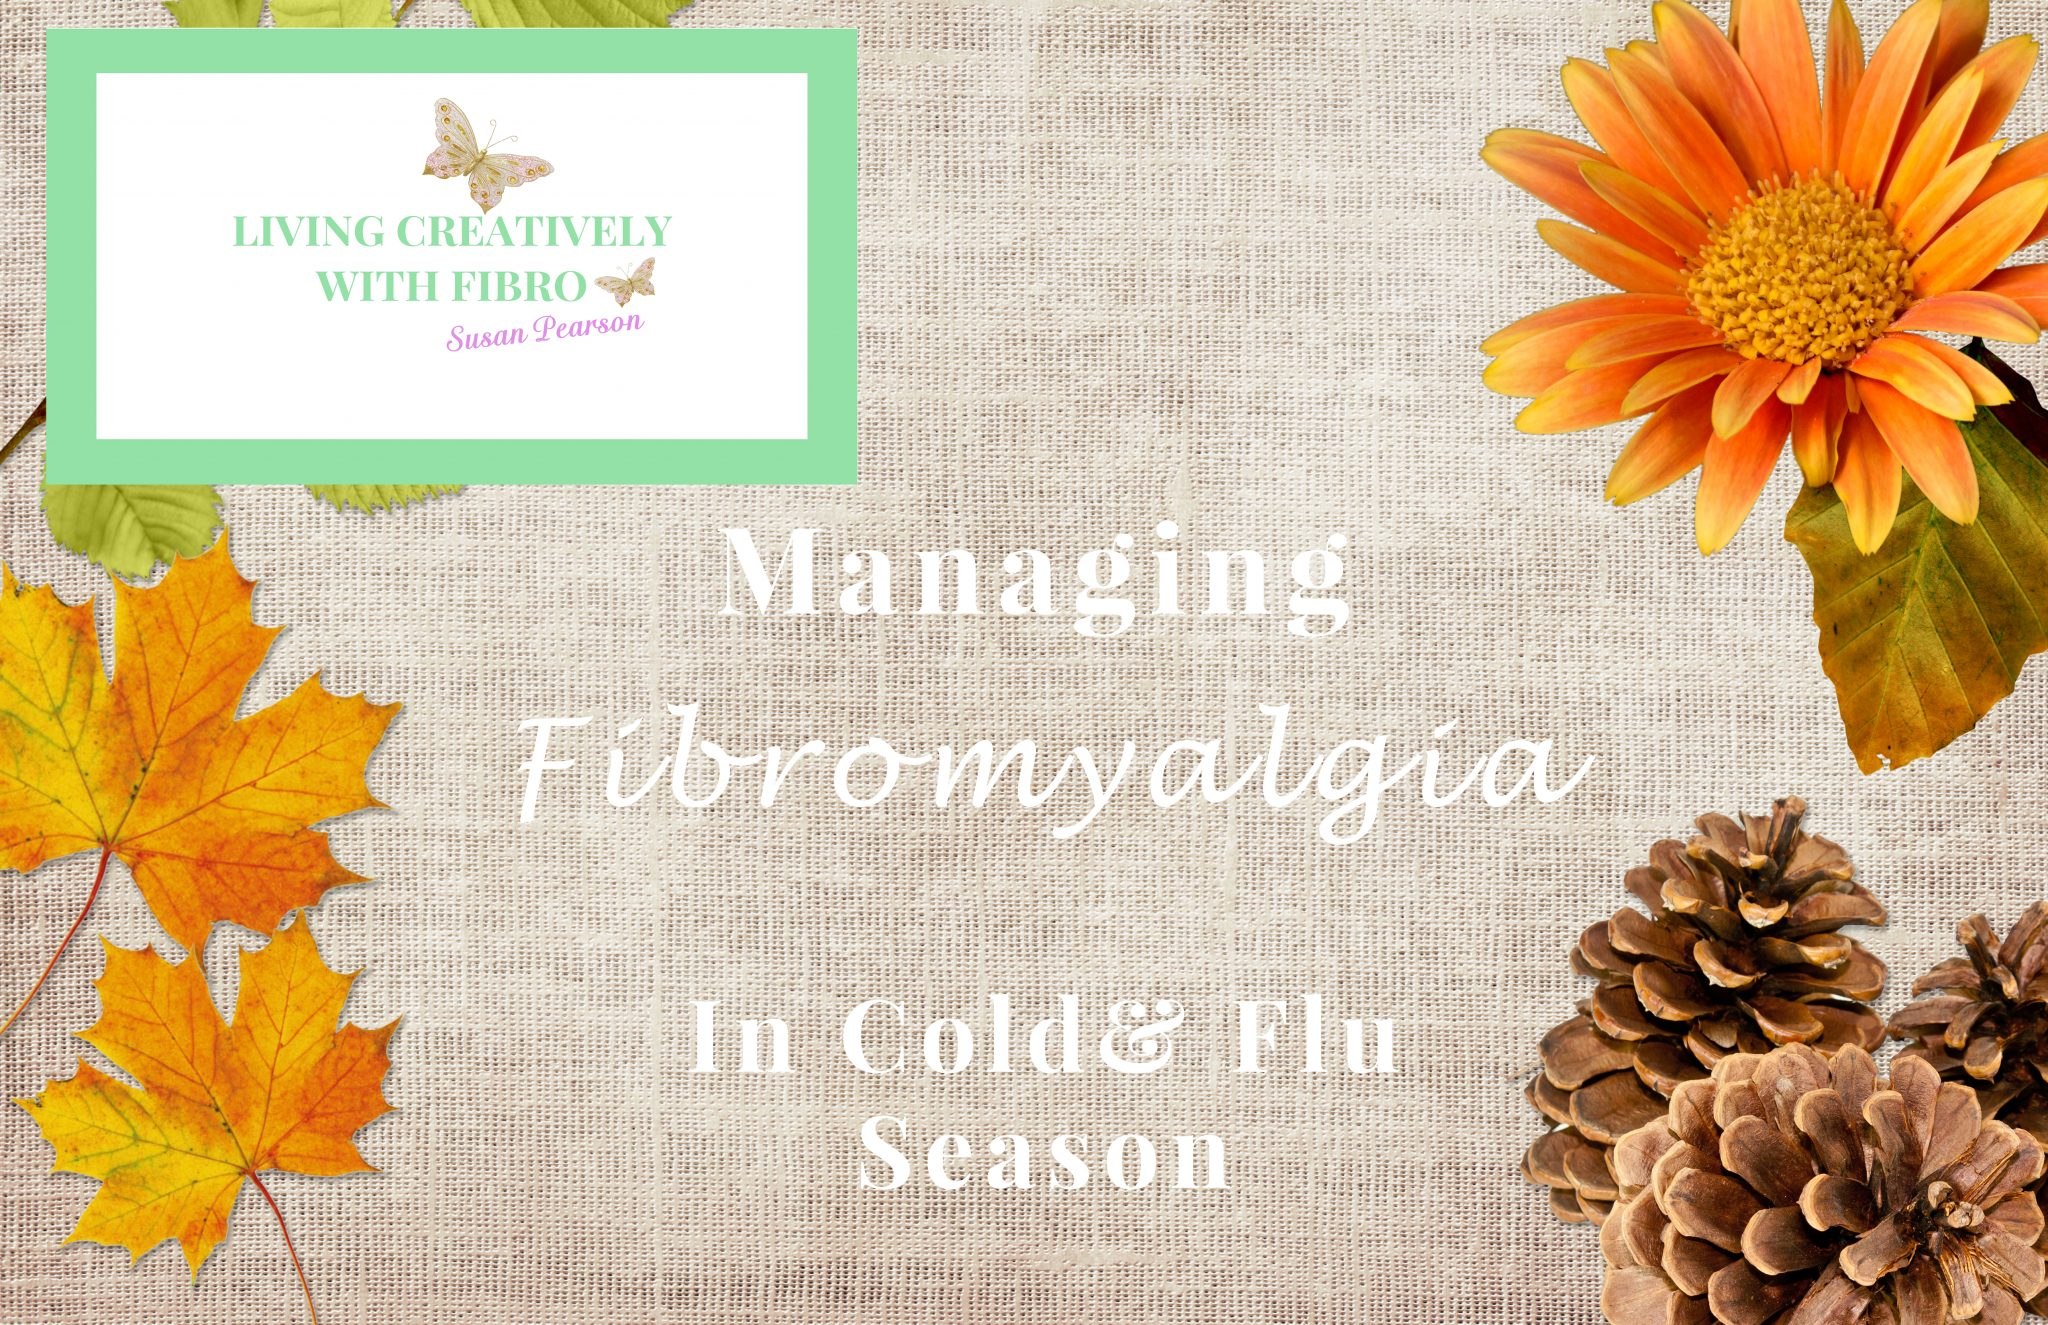 Living Creatively with Fibro | Managing Fibro in Cold and Flu Season